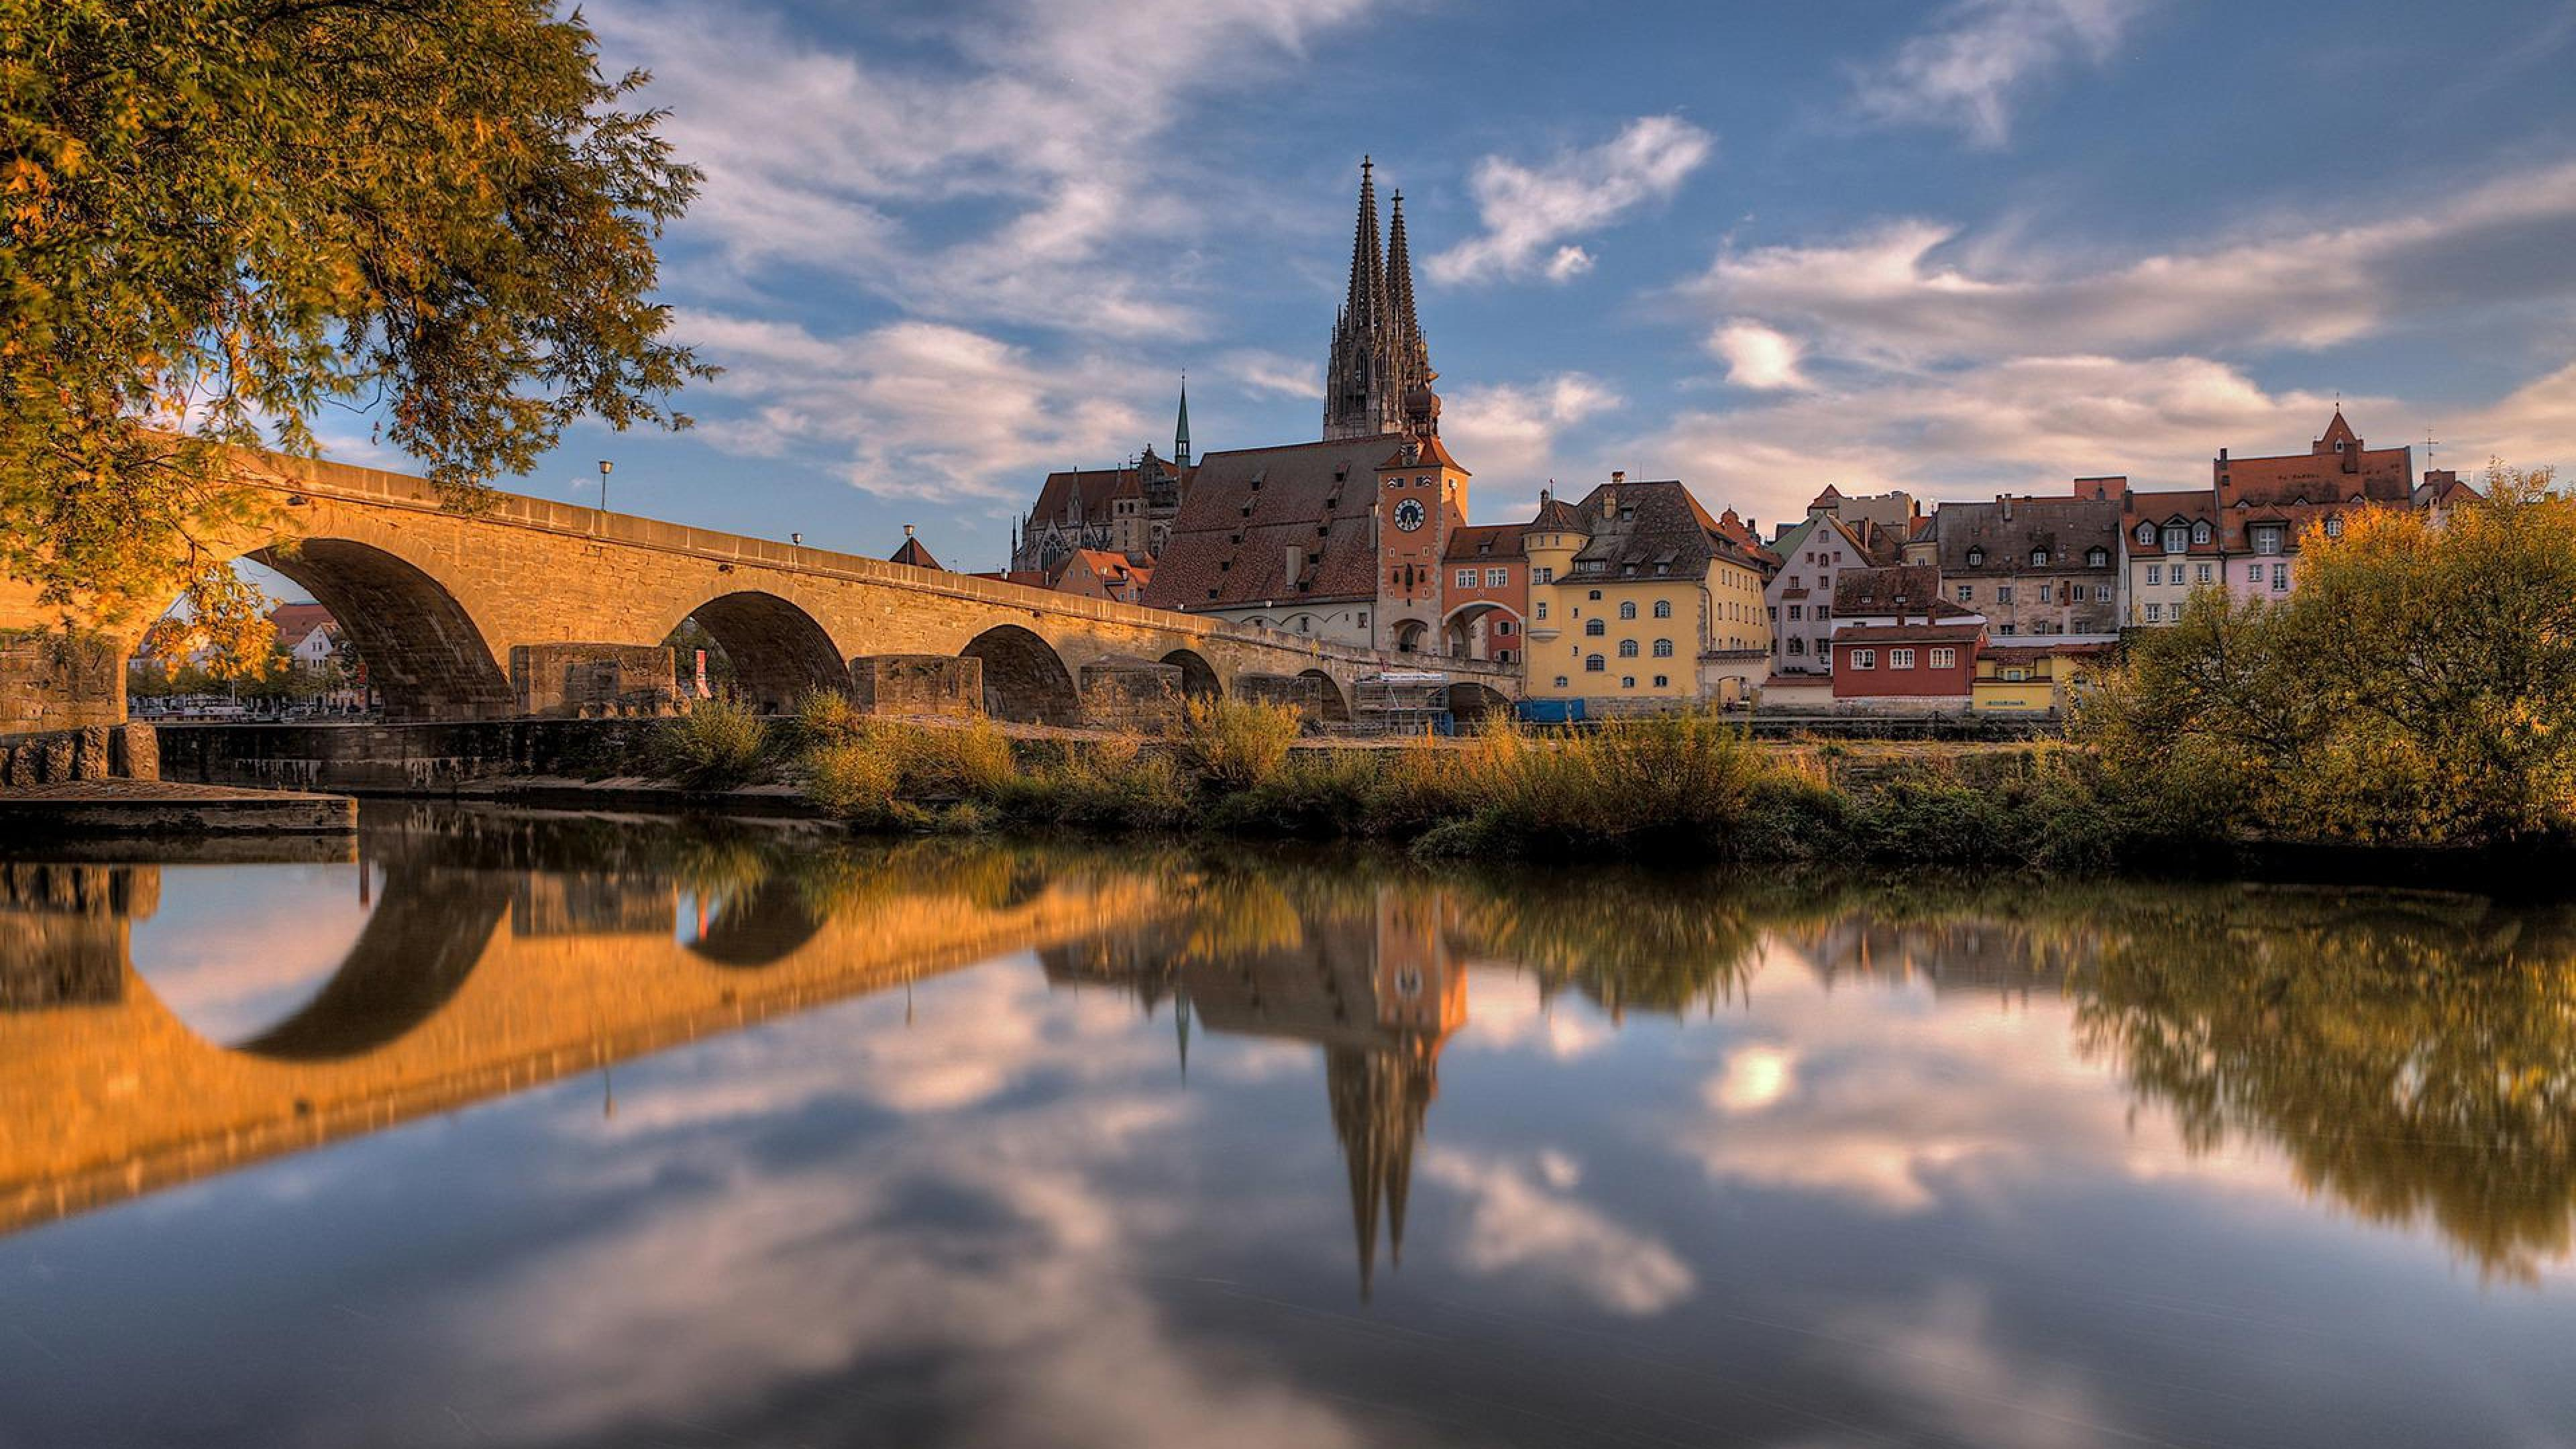 World Church Sky Germany Regensburg Europe House HD Wallpapers ...